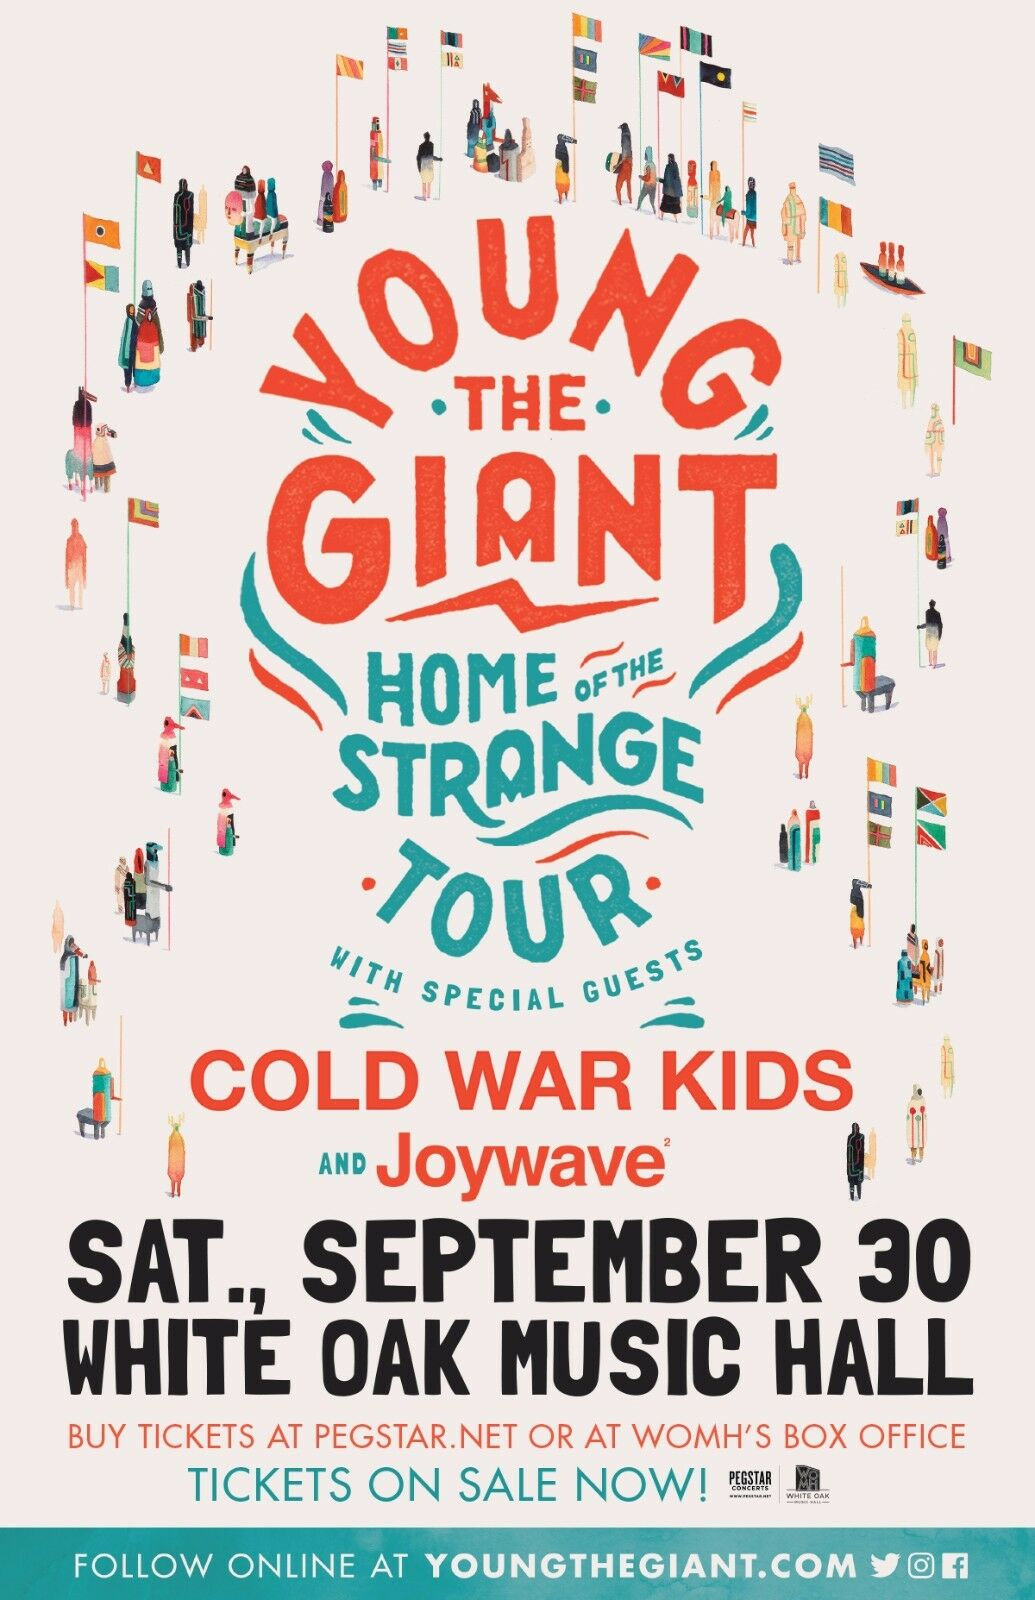 YOUNG THE GIANT HOME OF THE STRANGE TOUR 2017 HOUSTON CONCERT POSTER- Alt Rock - $10.99